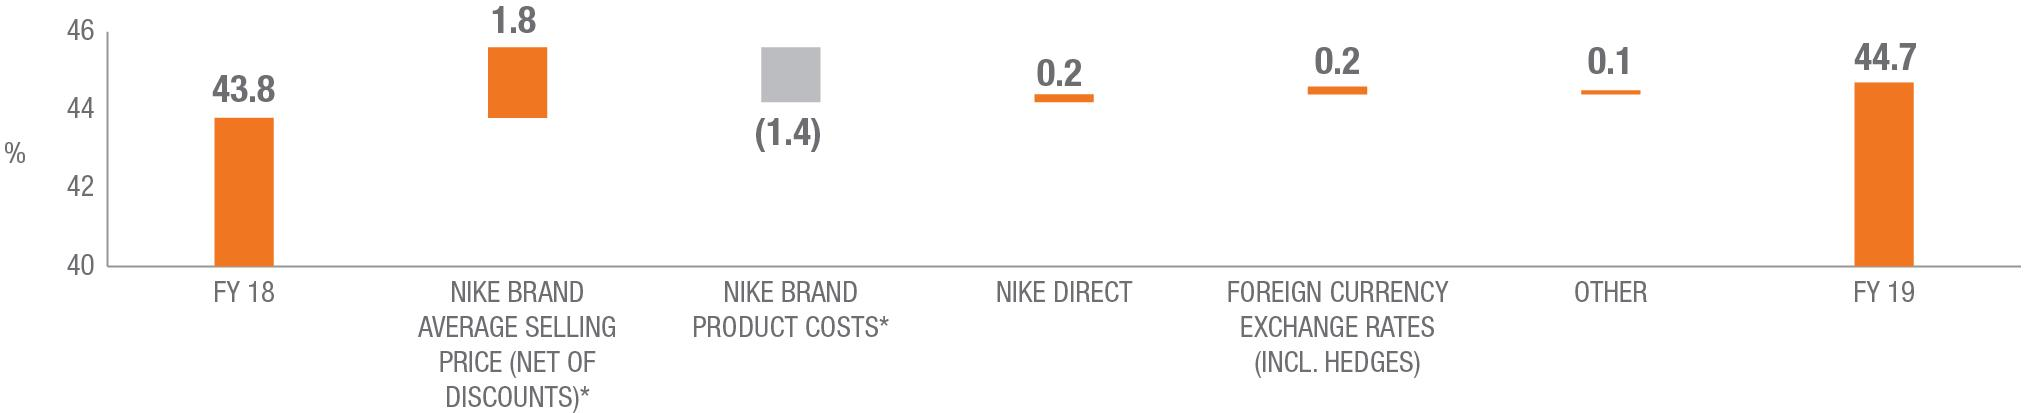 Nike: A Bullish Case That's Fully Justified - NIKE, Inc. (NYSE:NKE) | Seeking Alpha